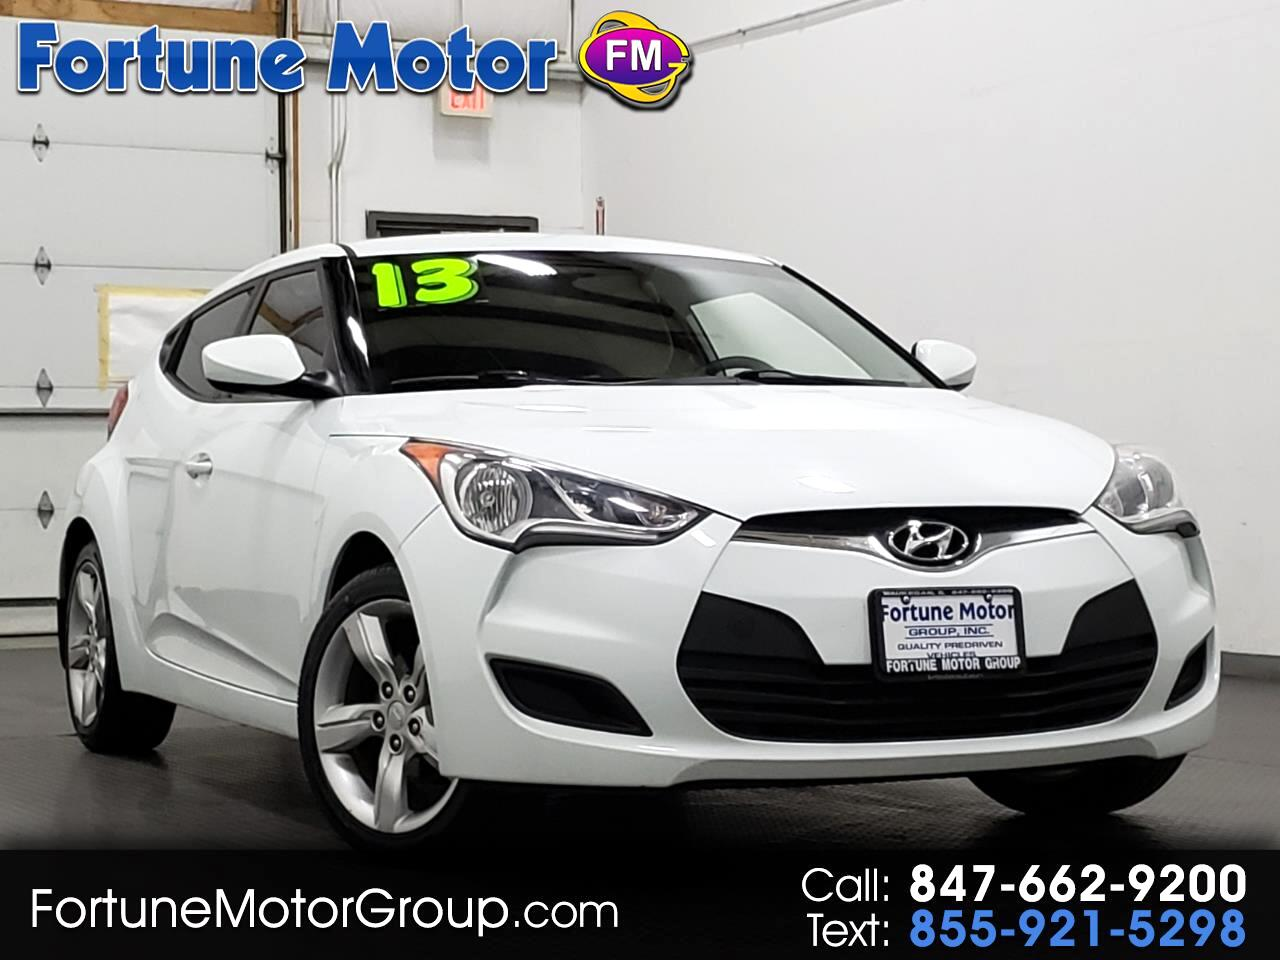 2013 Hyundai Veloster 3dr Cpe Man w/Gray Int